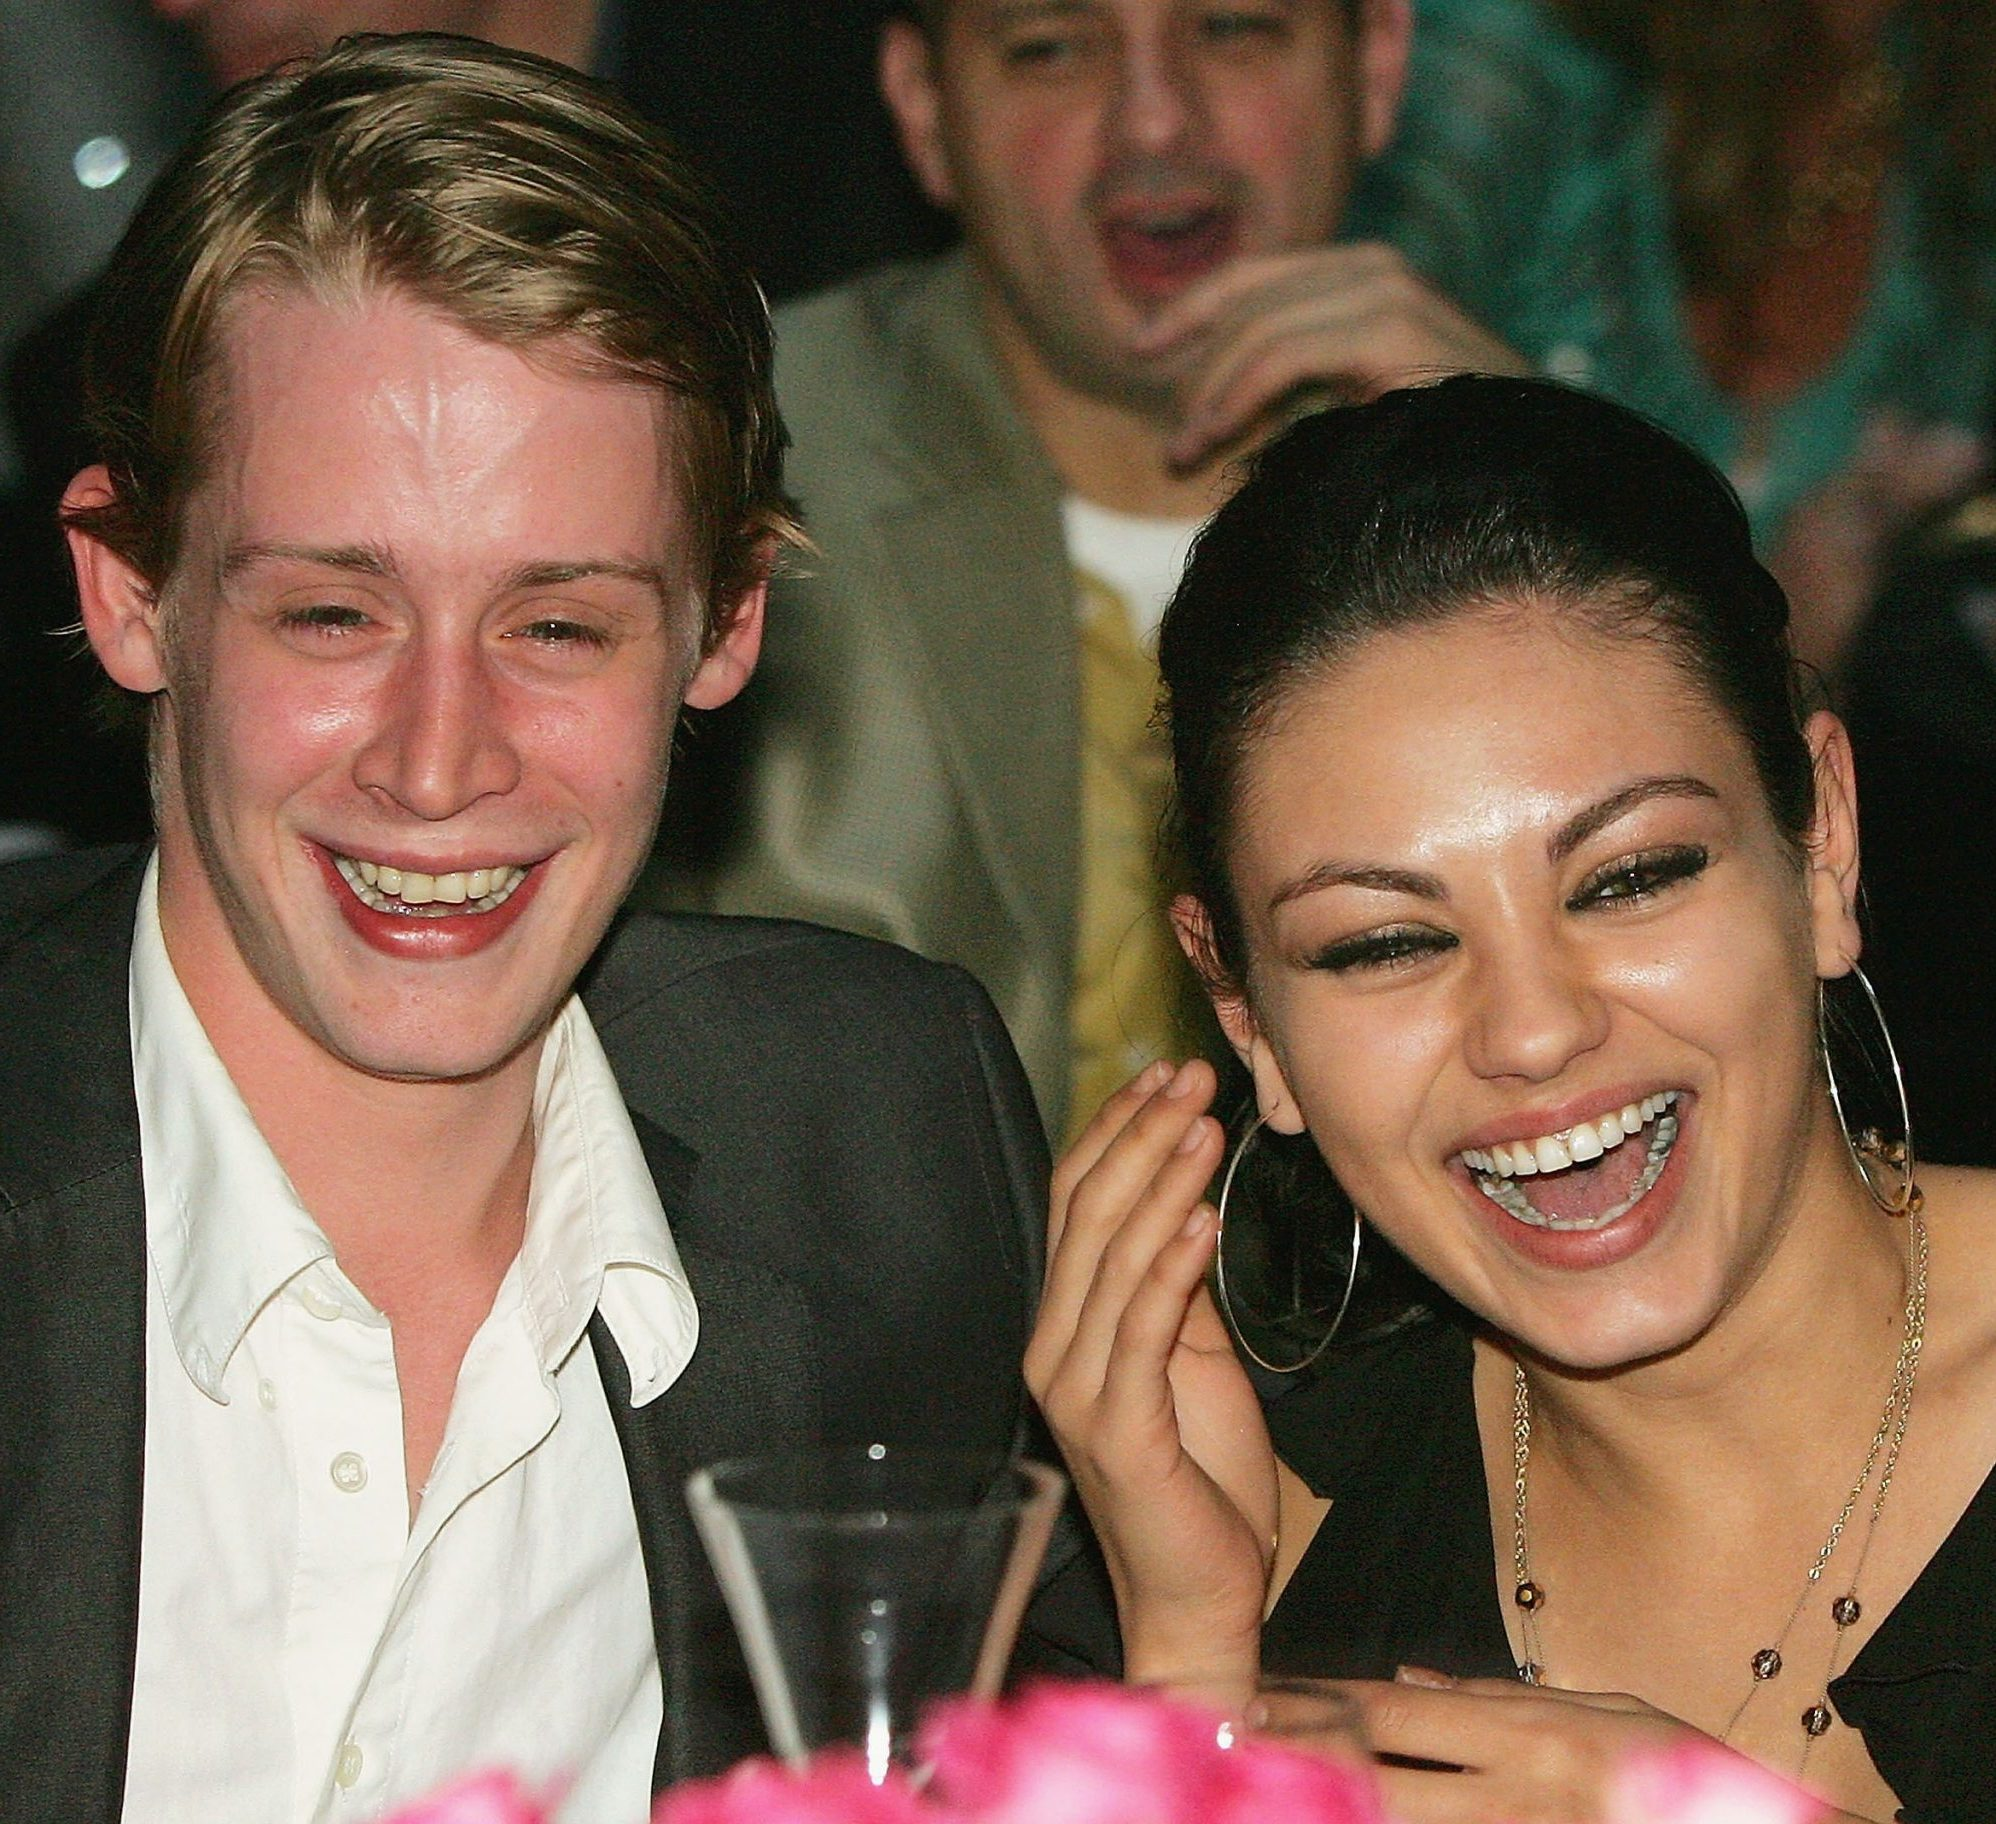 GettyImages 55932281 scaled e1622027761594 Unlikely Celebrity Couples You Won't Believe Ever Dated